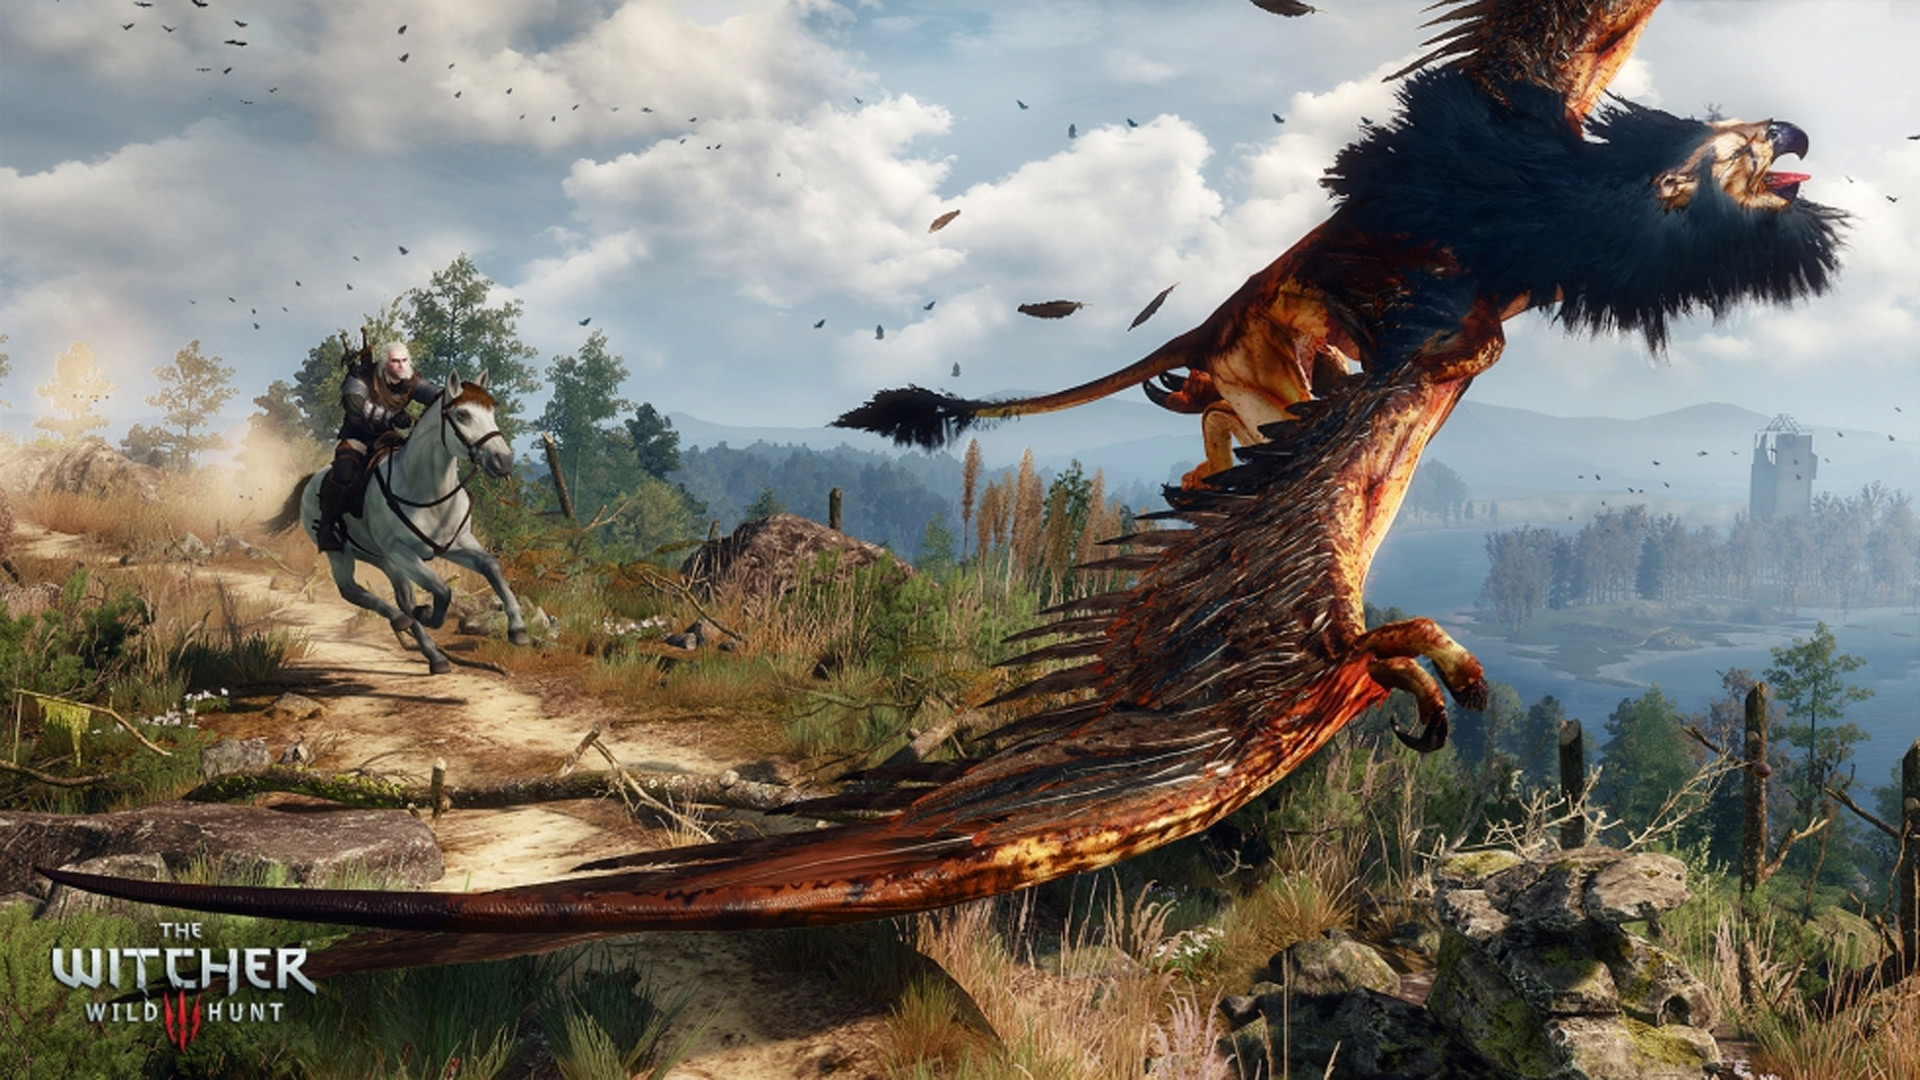 The Witcher 3: Wild Hunt Nintendo Switch File Size